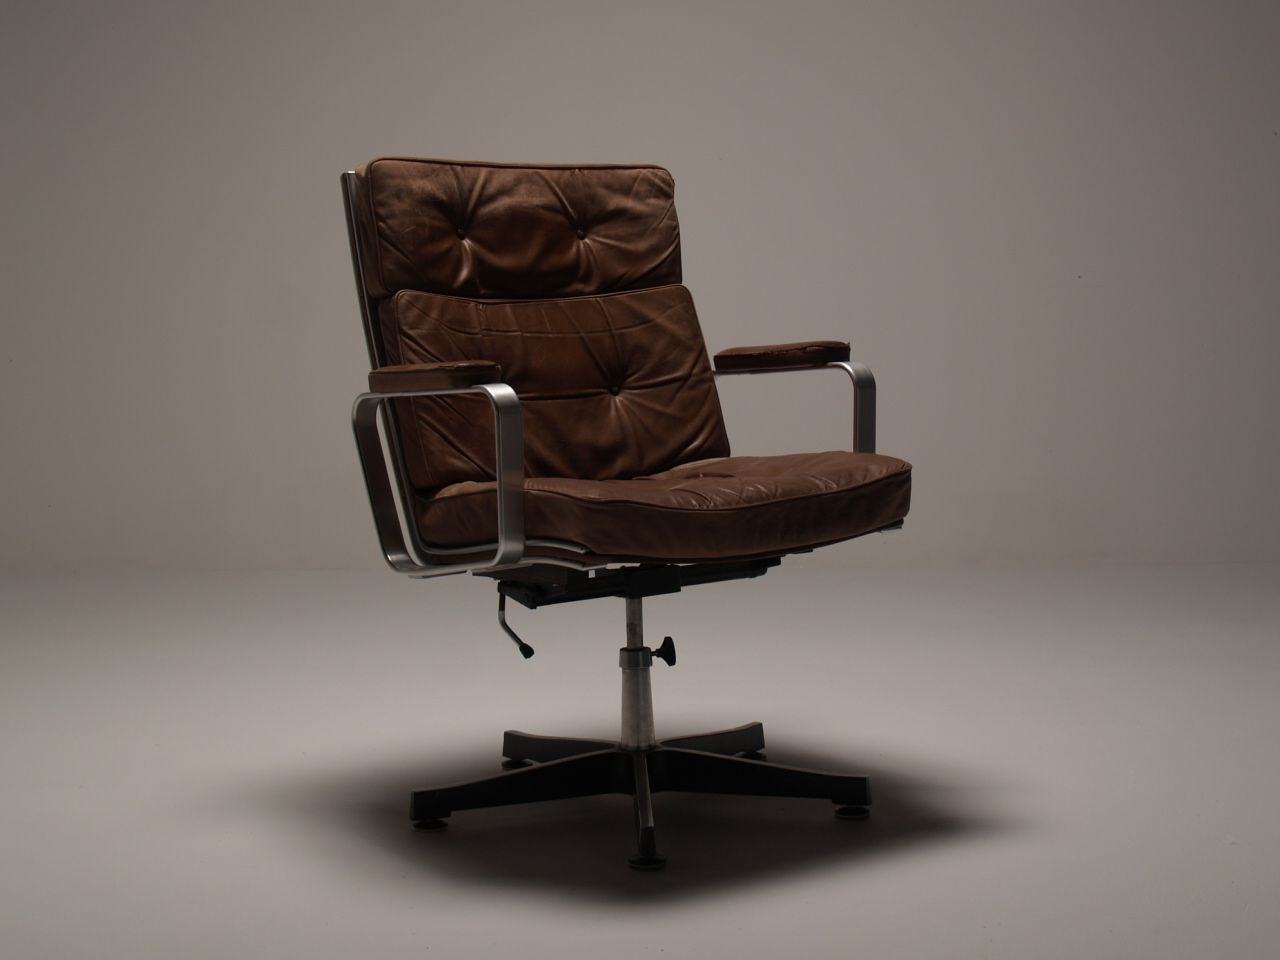 Scandinavian Vintage Office Swivel Chair In Brilliantly Worn And Retro Brown Leather With A Strong